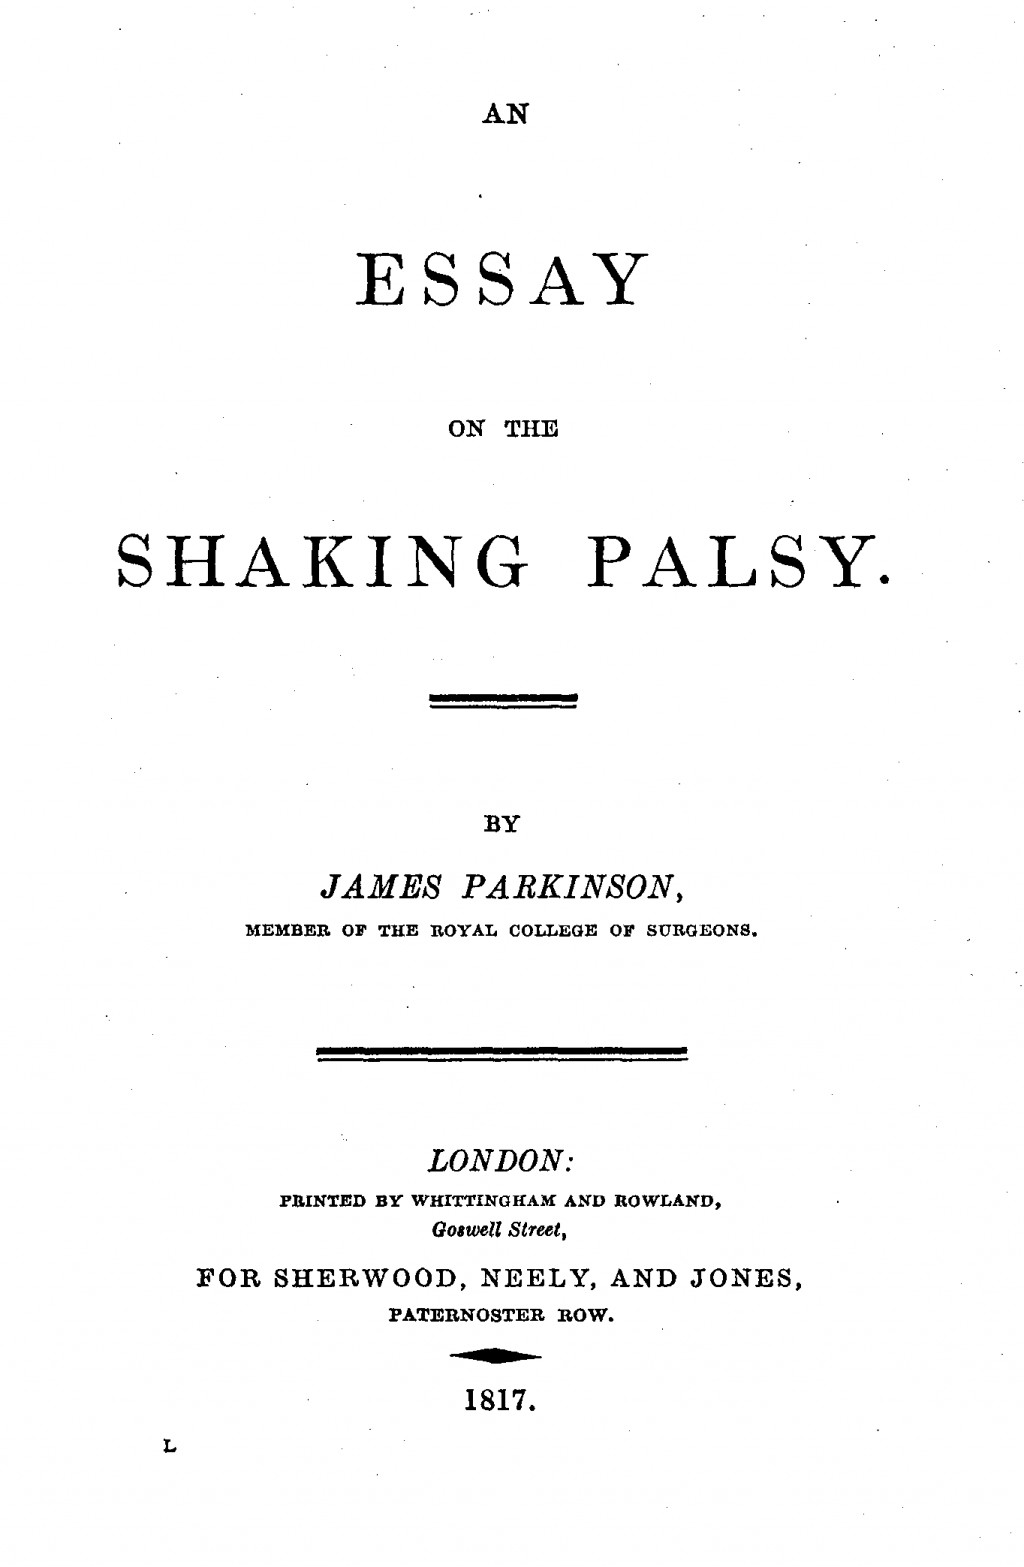 009 Essay Example Parkinson2c On The Shaking Palsy 28title Page29 What Is Cover Page For Awesome A An Does 2 Look Like Two Should I Put Of Large